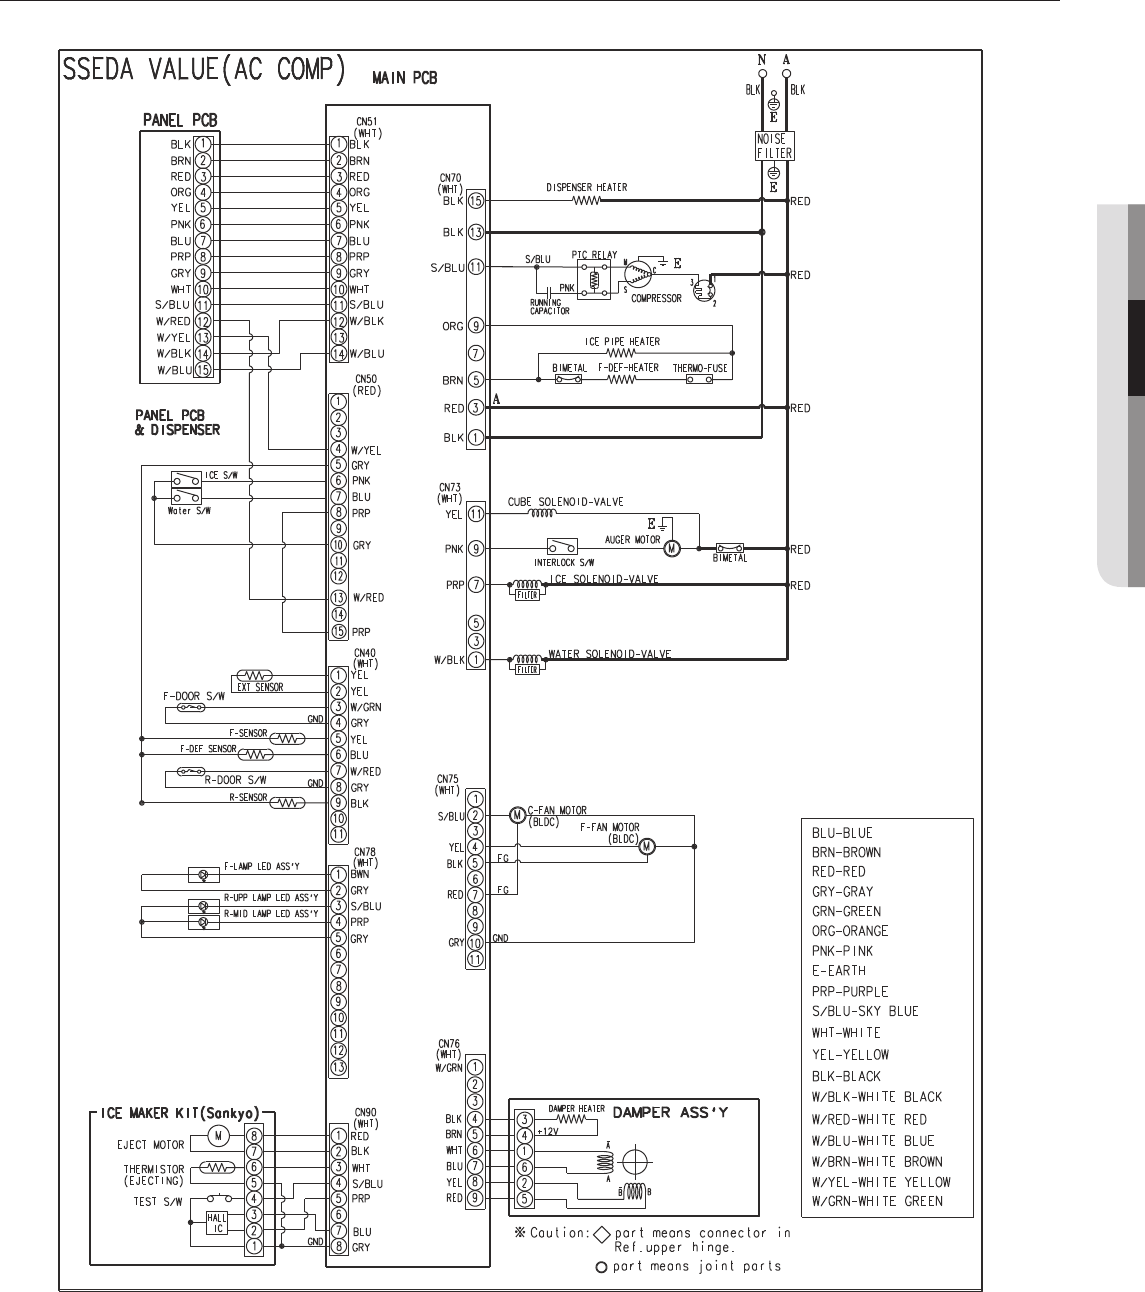 21aa6212 5c03 4539 ac02 99a0885d5c5e bg1f page 31 of samsung refrigerator rs261mdwp user guide wiring diagram for a refrigerator compressor at edmiracle.co